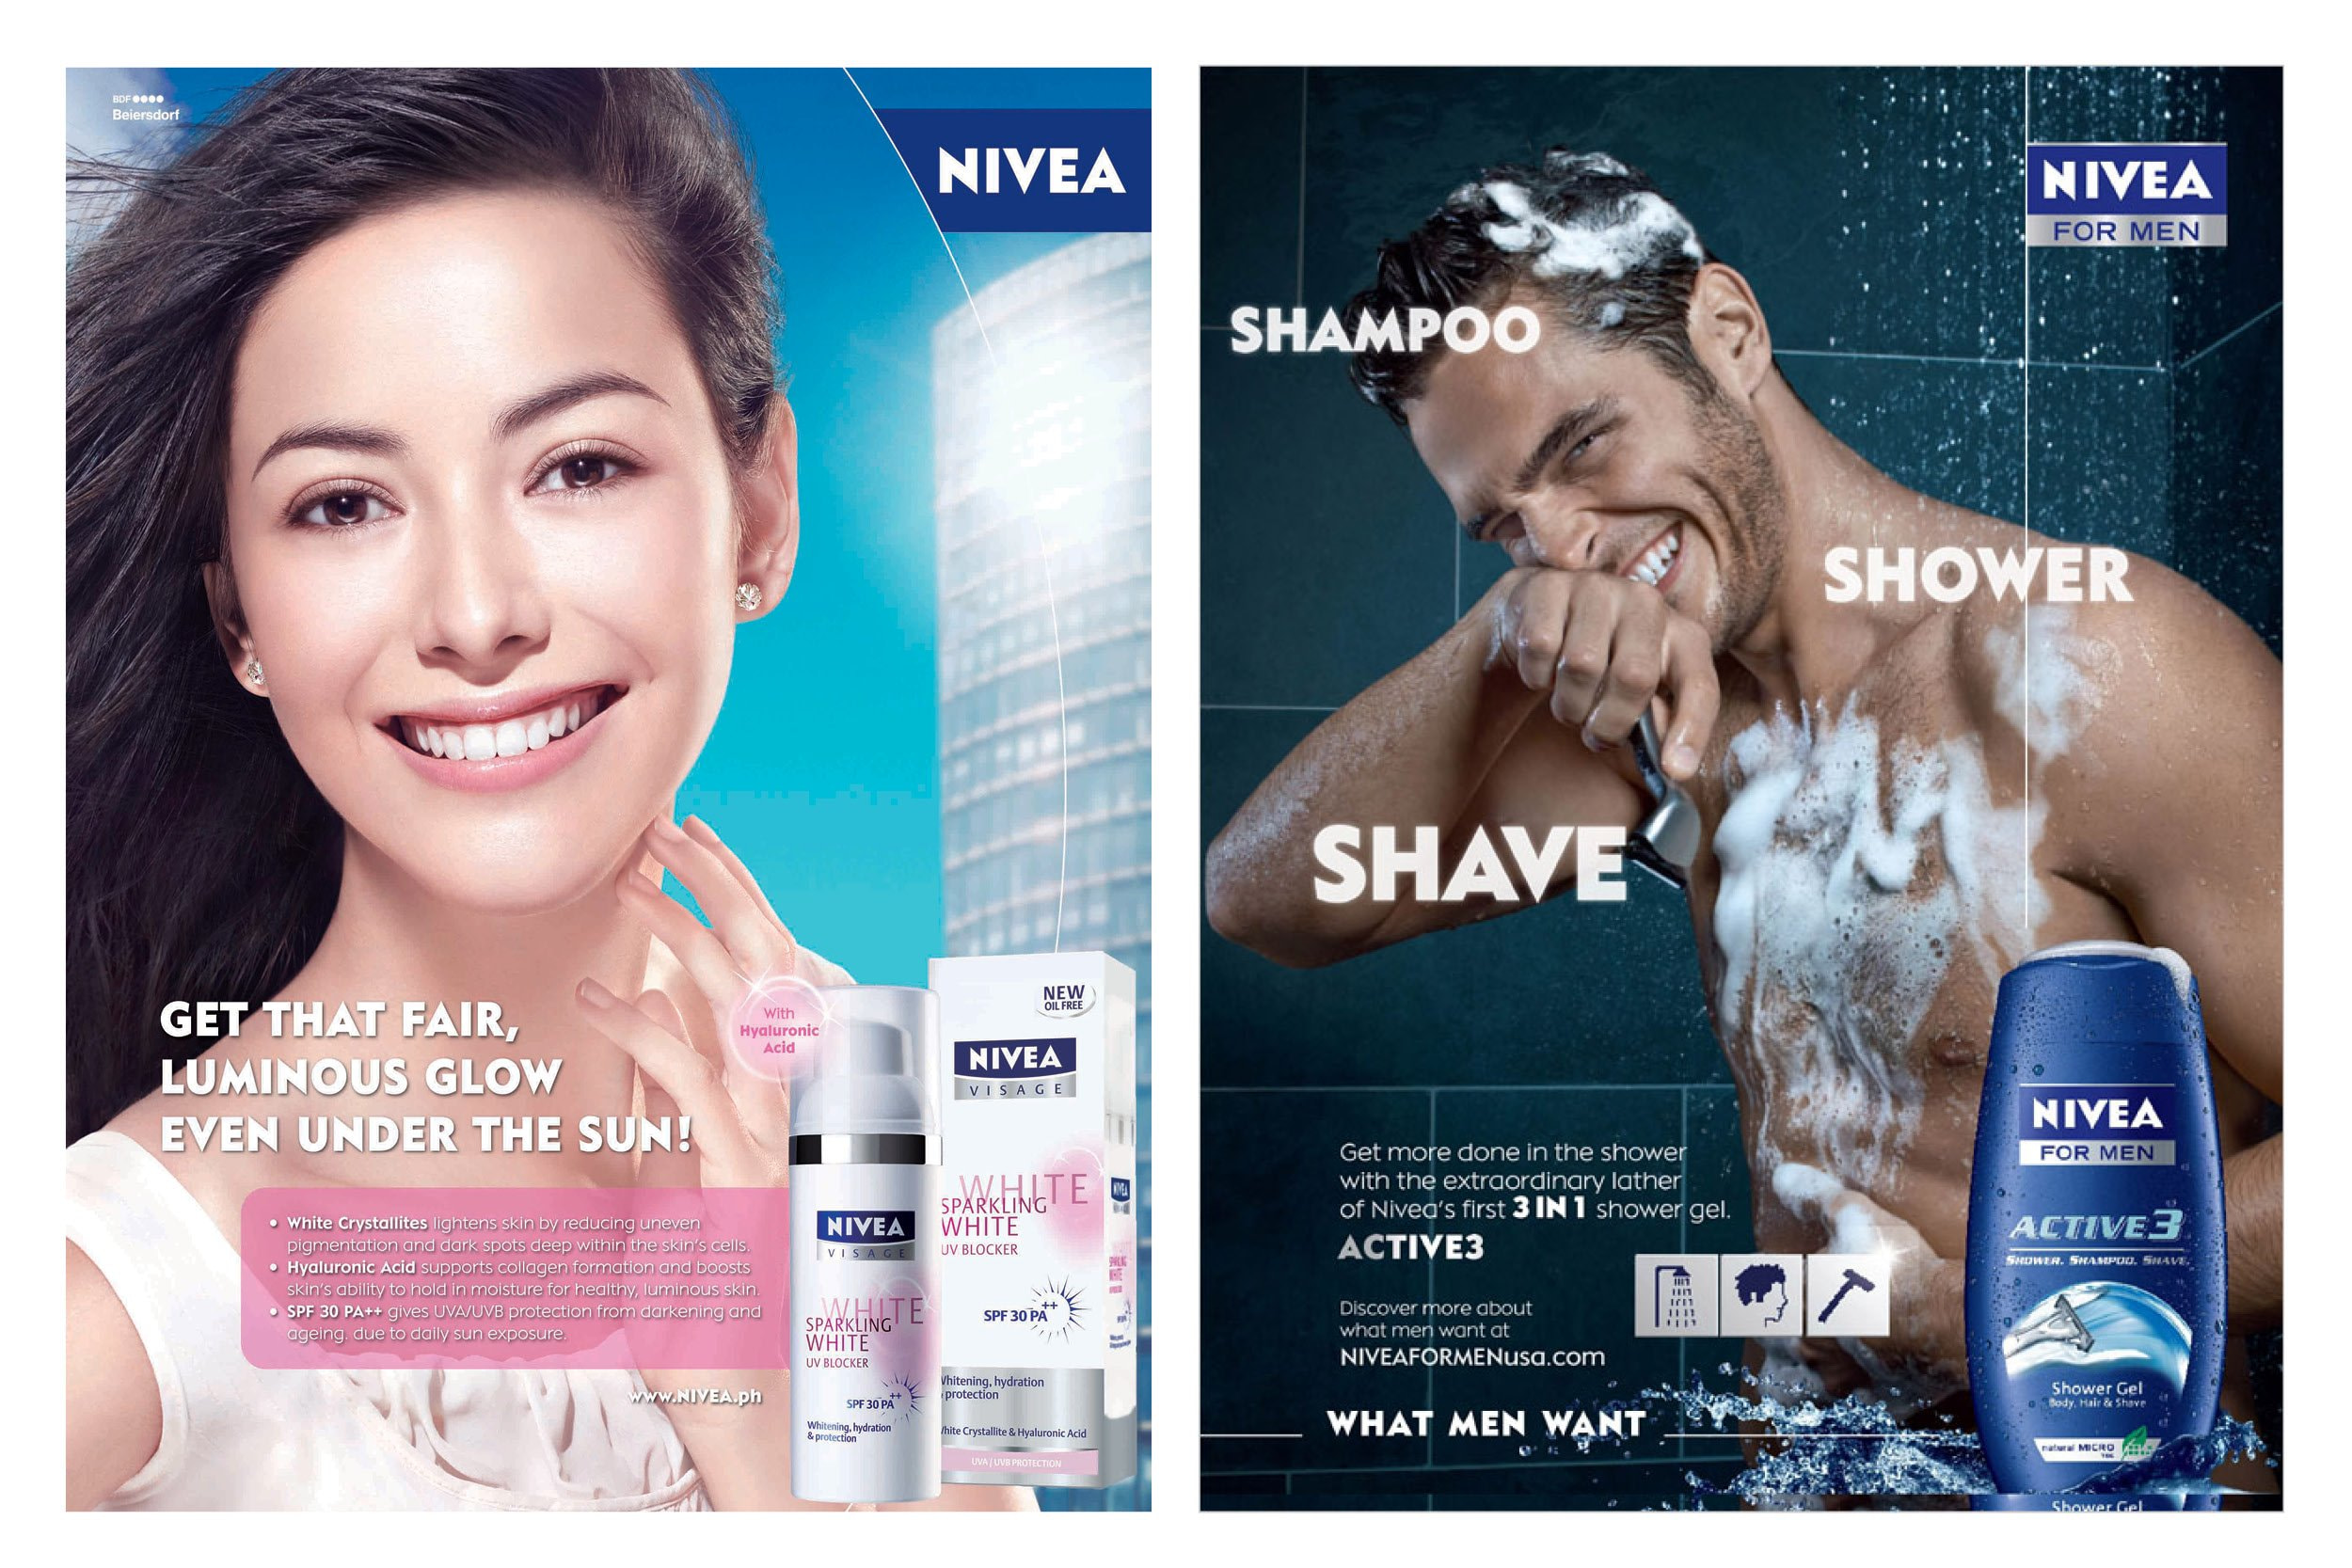 Nivea manages to maintain a distinct brand while still creating unique and tailored sub-brands to appeal to both women and men. Images via Nikoganda and The New York Times